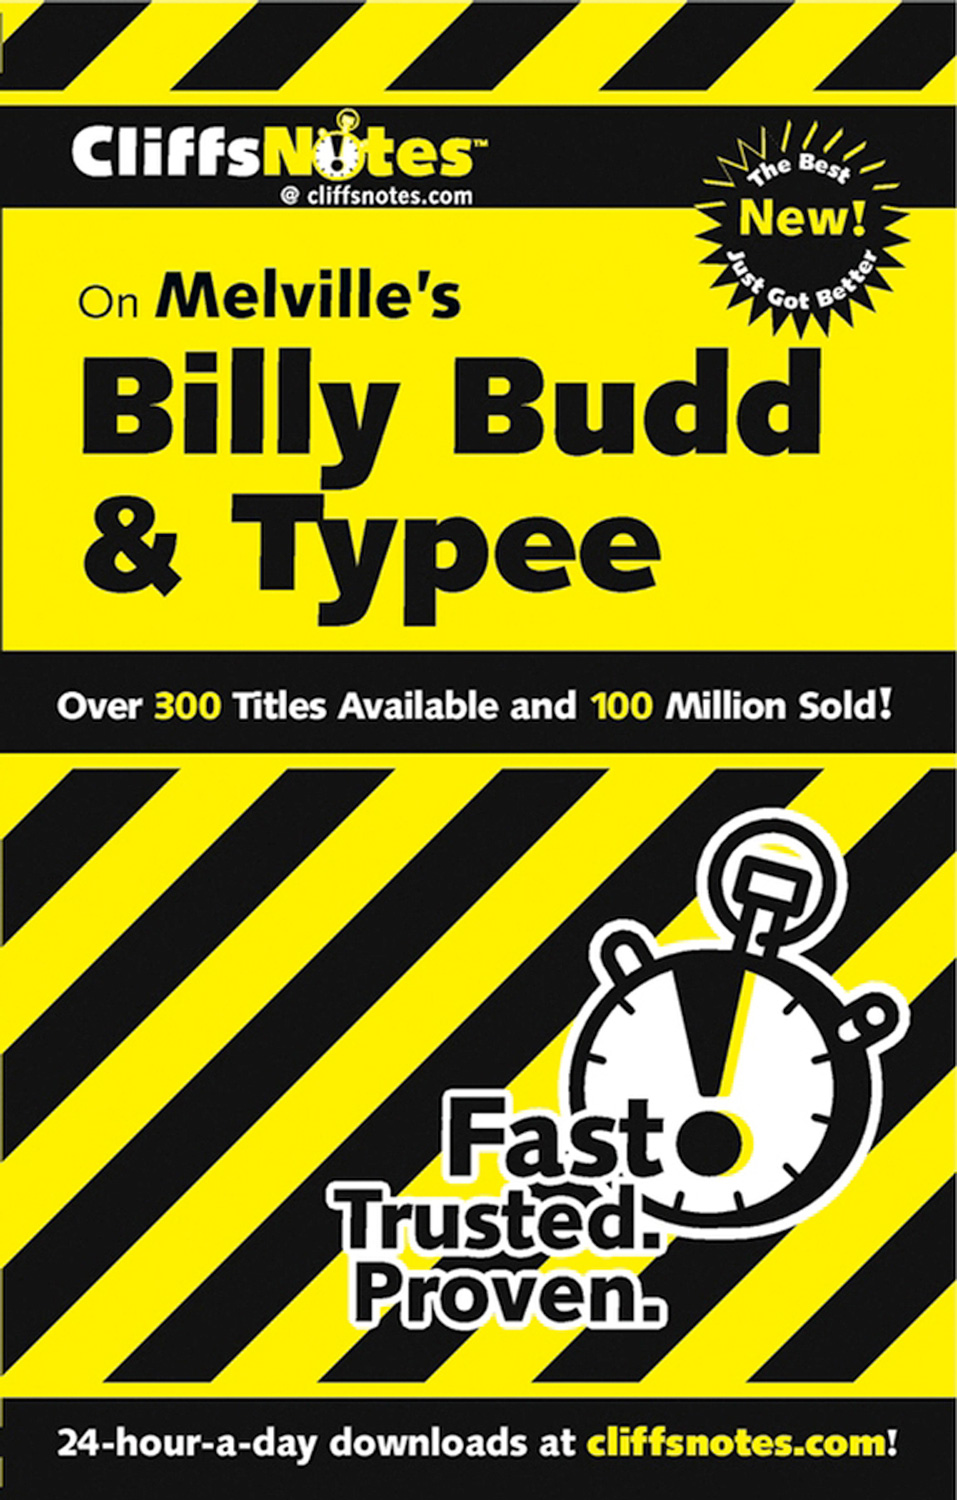 CliffsNotes on Melville's Billy Budd & Typee, Revised Edition-9780764539503